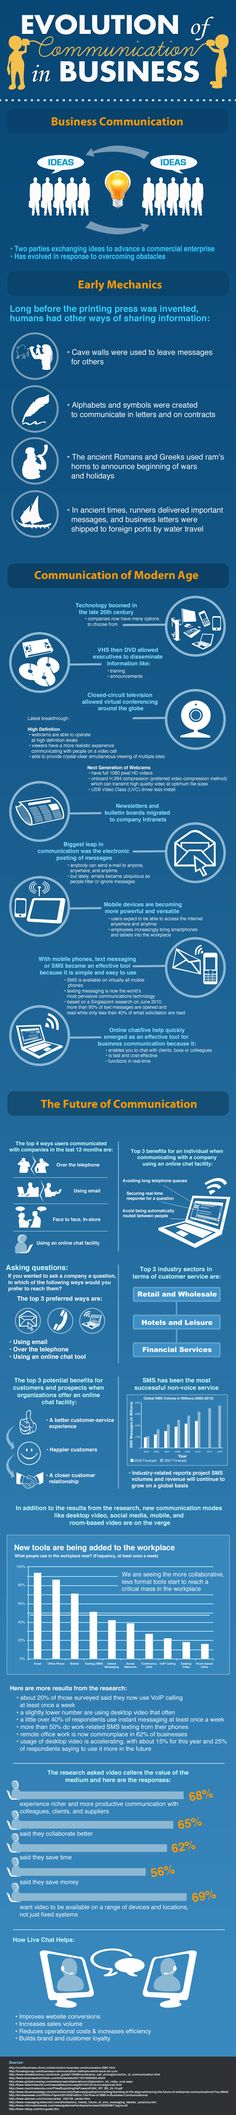 Evolution of communication in business